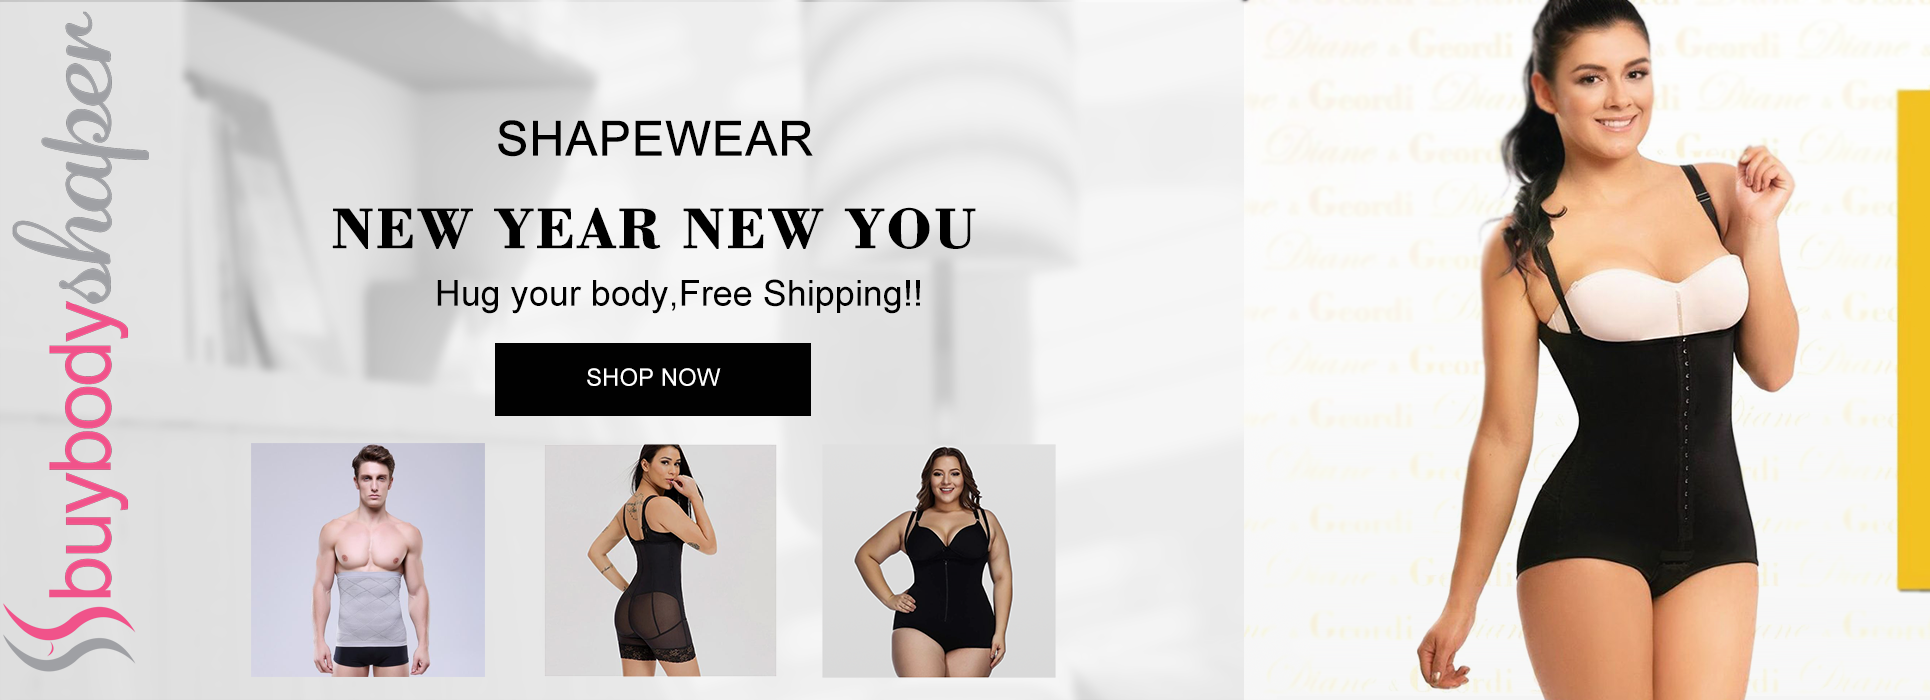 This New Year Evening Party look more Sexy with Body Shaper